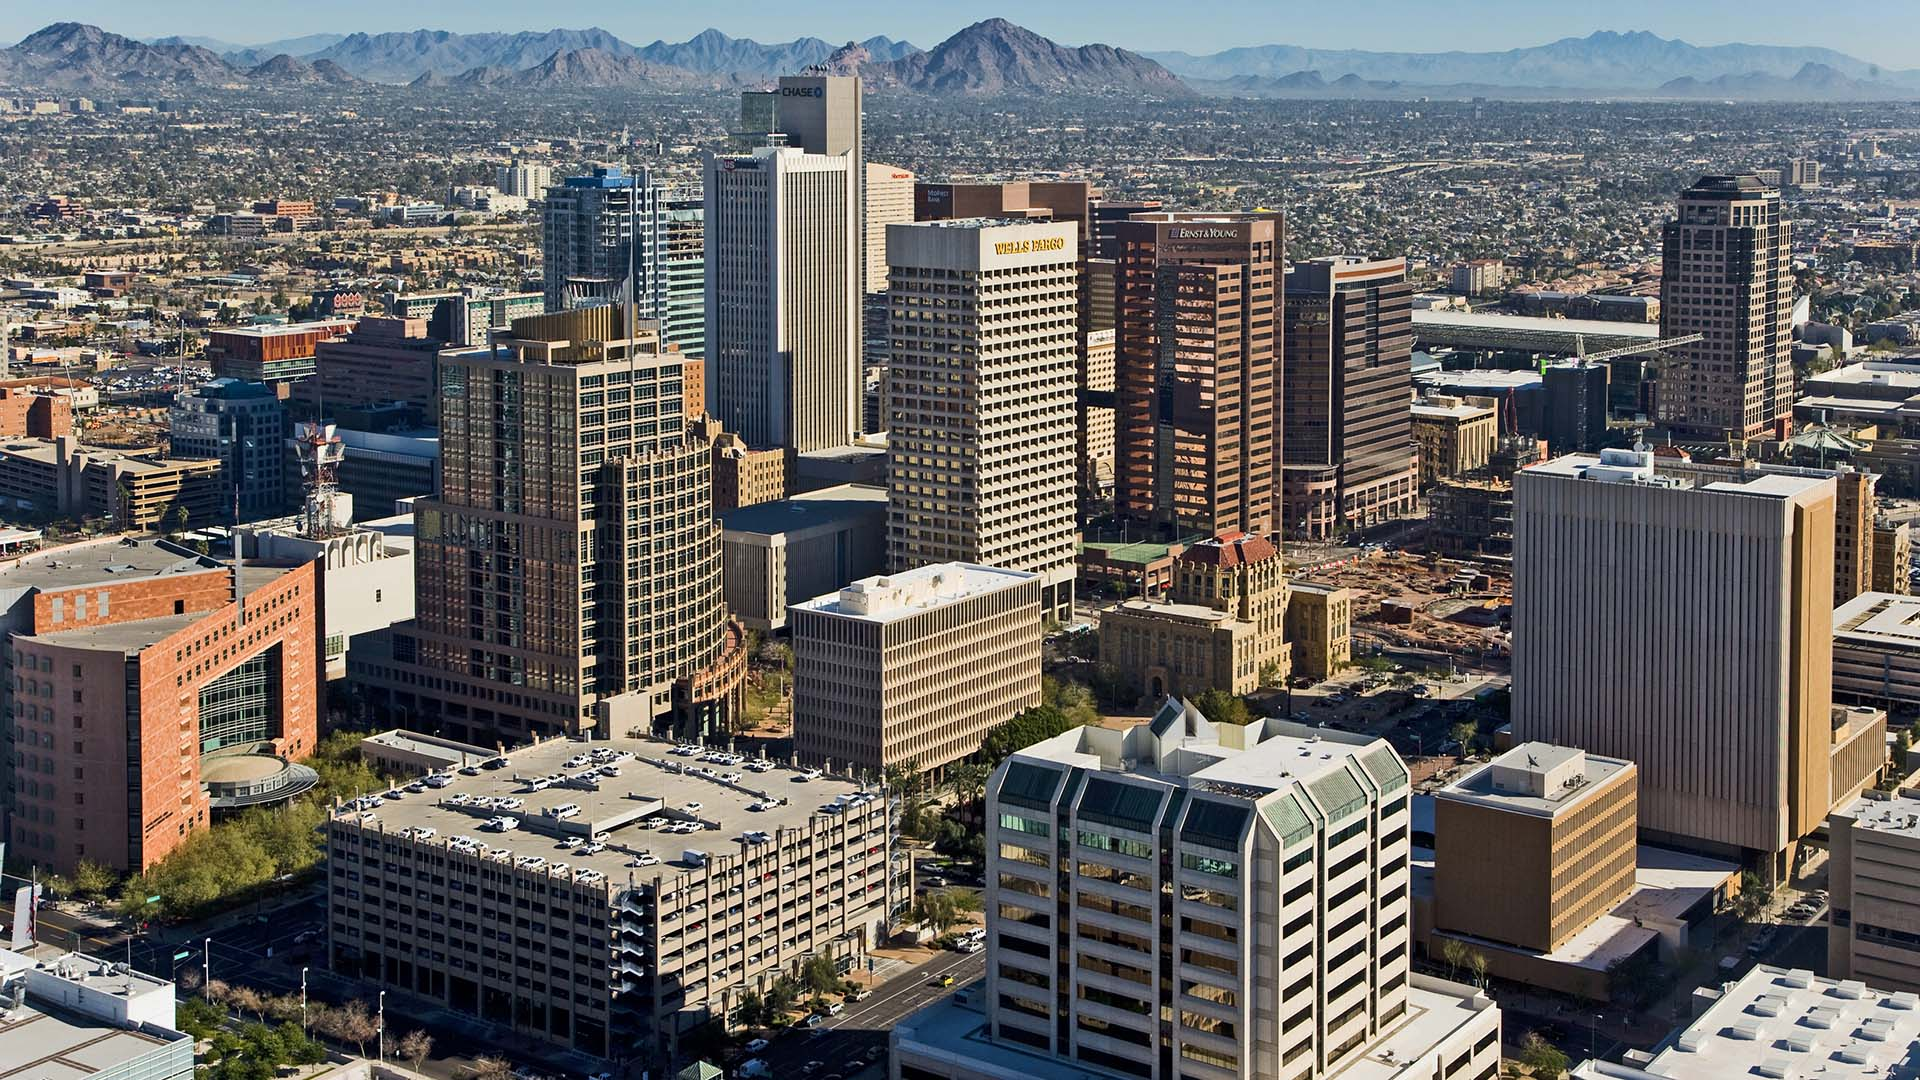 An aerial view of downtown Phoenix.